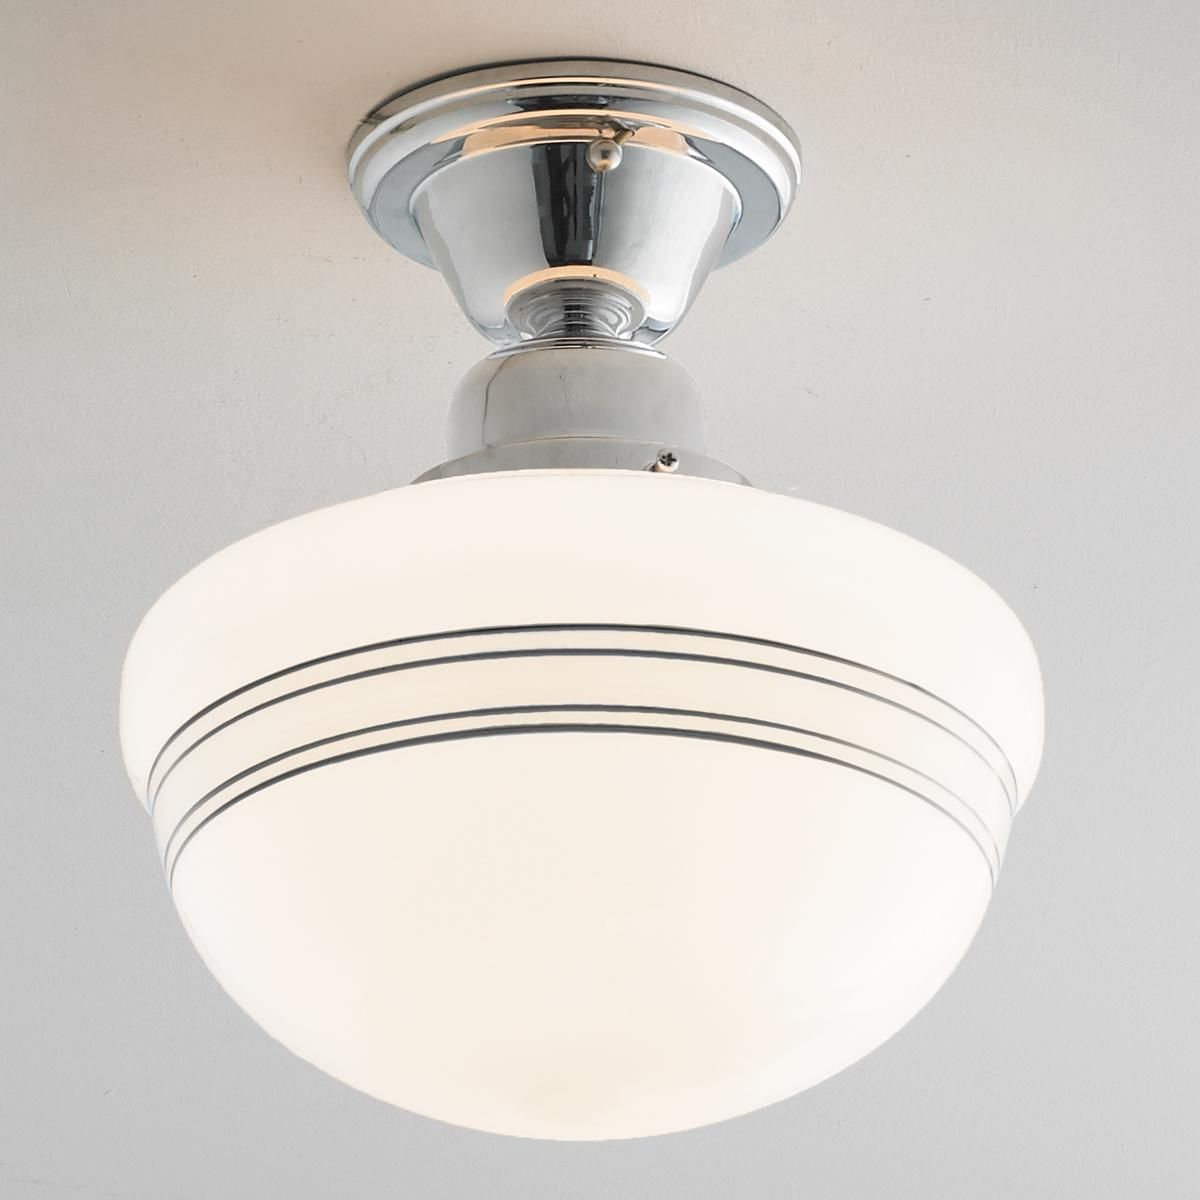 Striped Schoolhouse Ceiling Light In 2020 Ceiling Lights Ceiling Light Shades Cottage Lighting